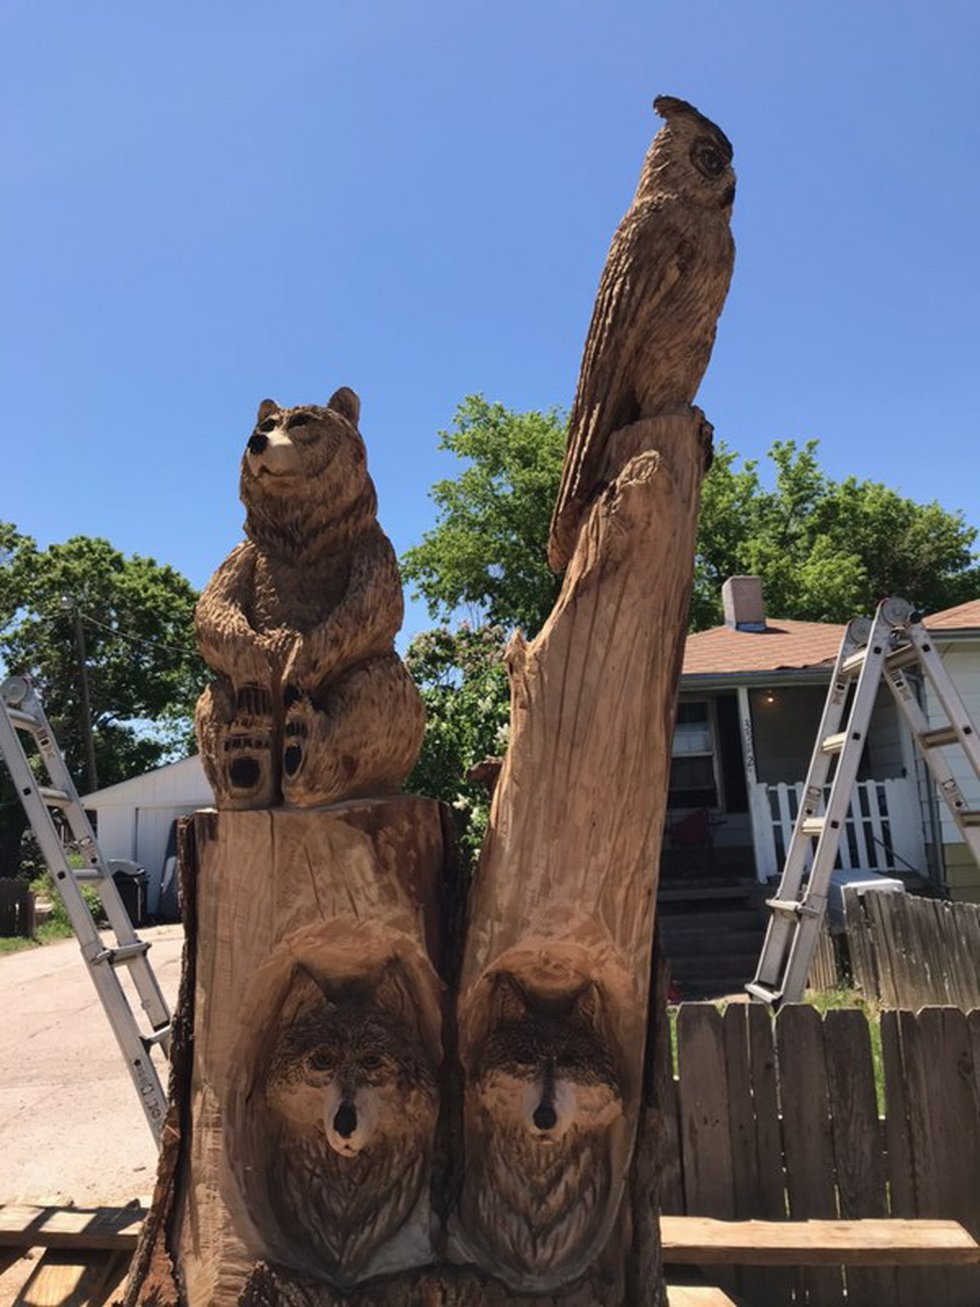 The final product of Chainsaw Mama's sculpture in Cheyenne on Wednesday.